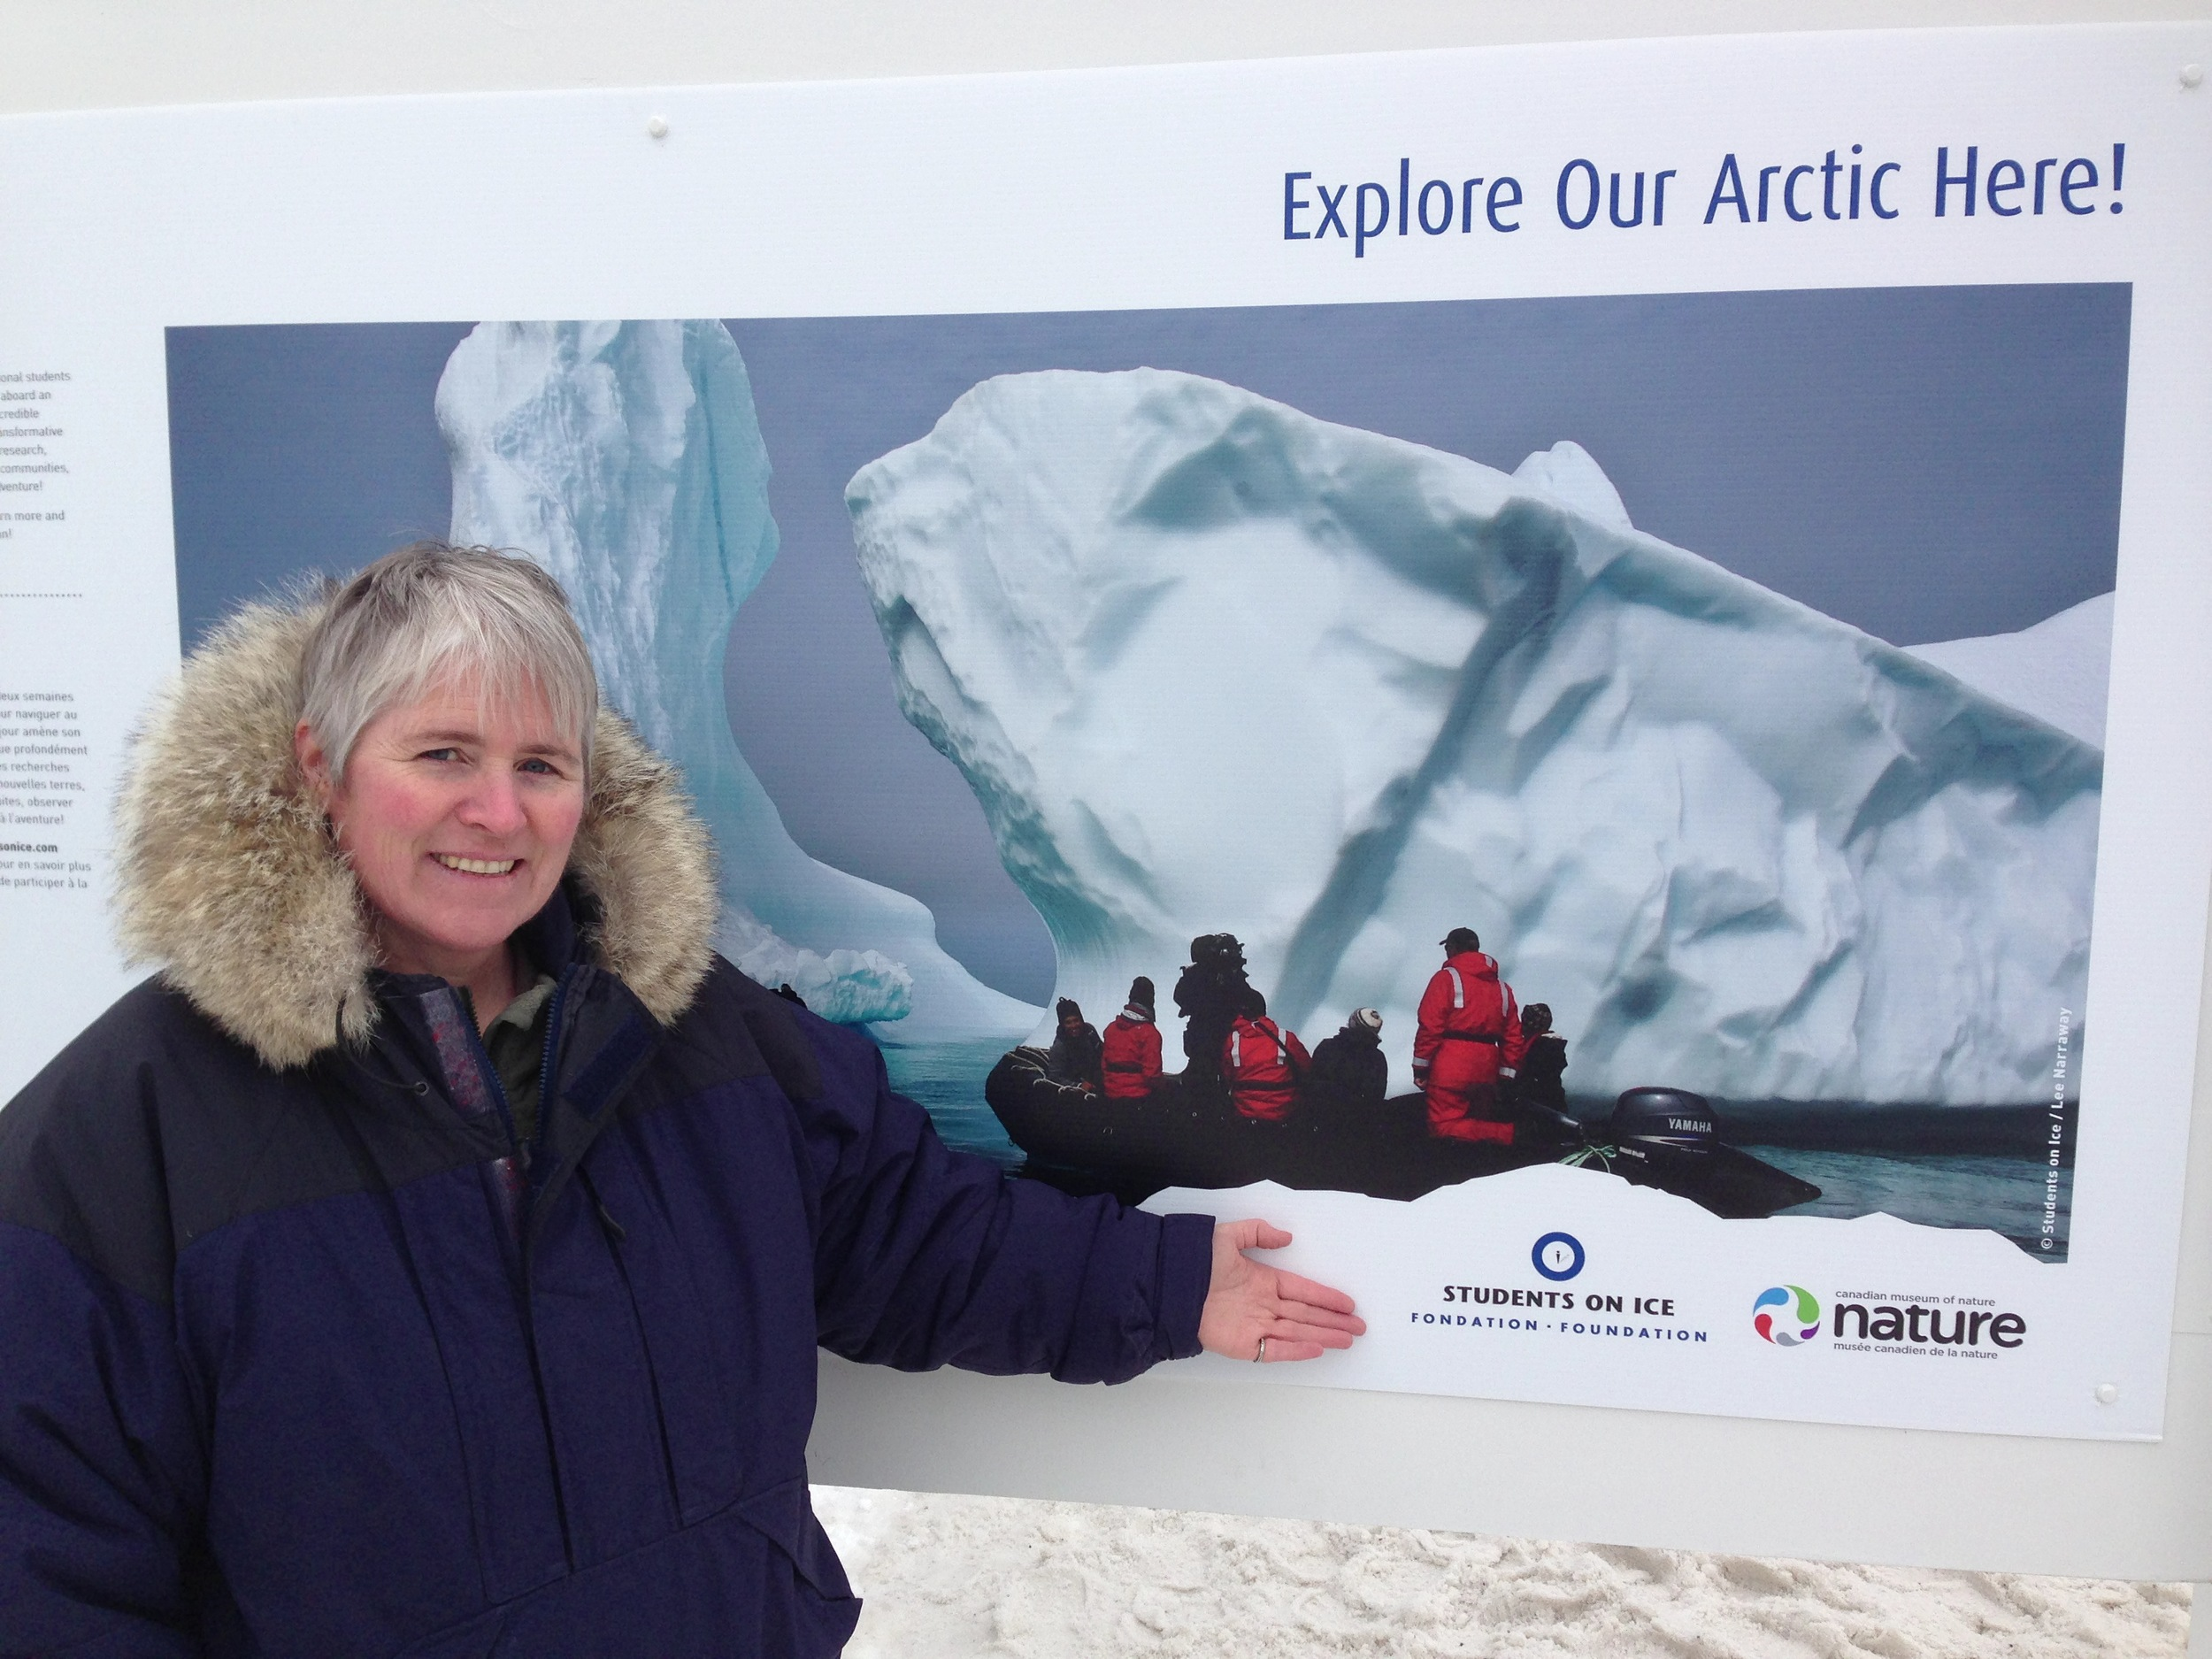 Here I am beside the Students On Ice/Canadian Museum of Nature arctic expedition display.